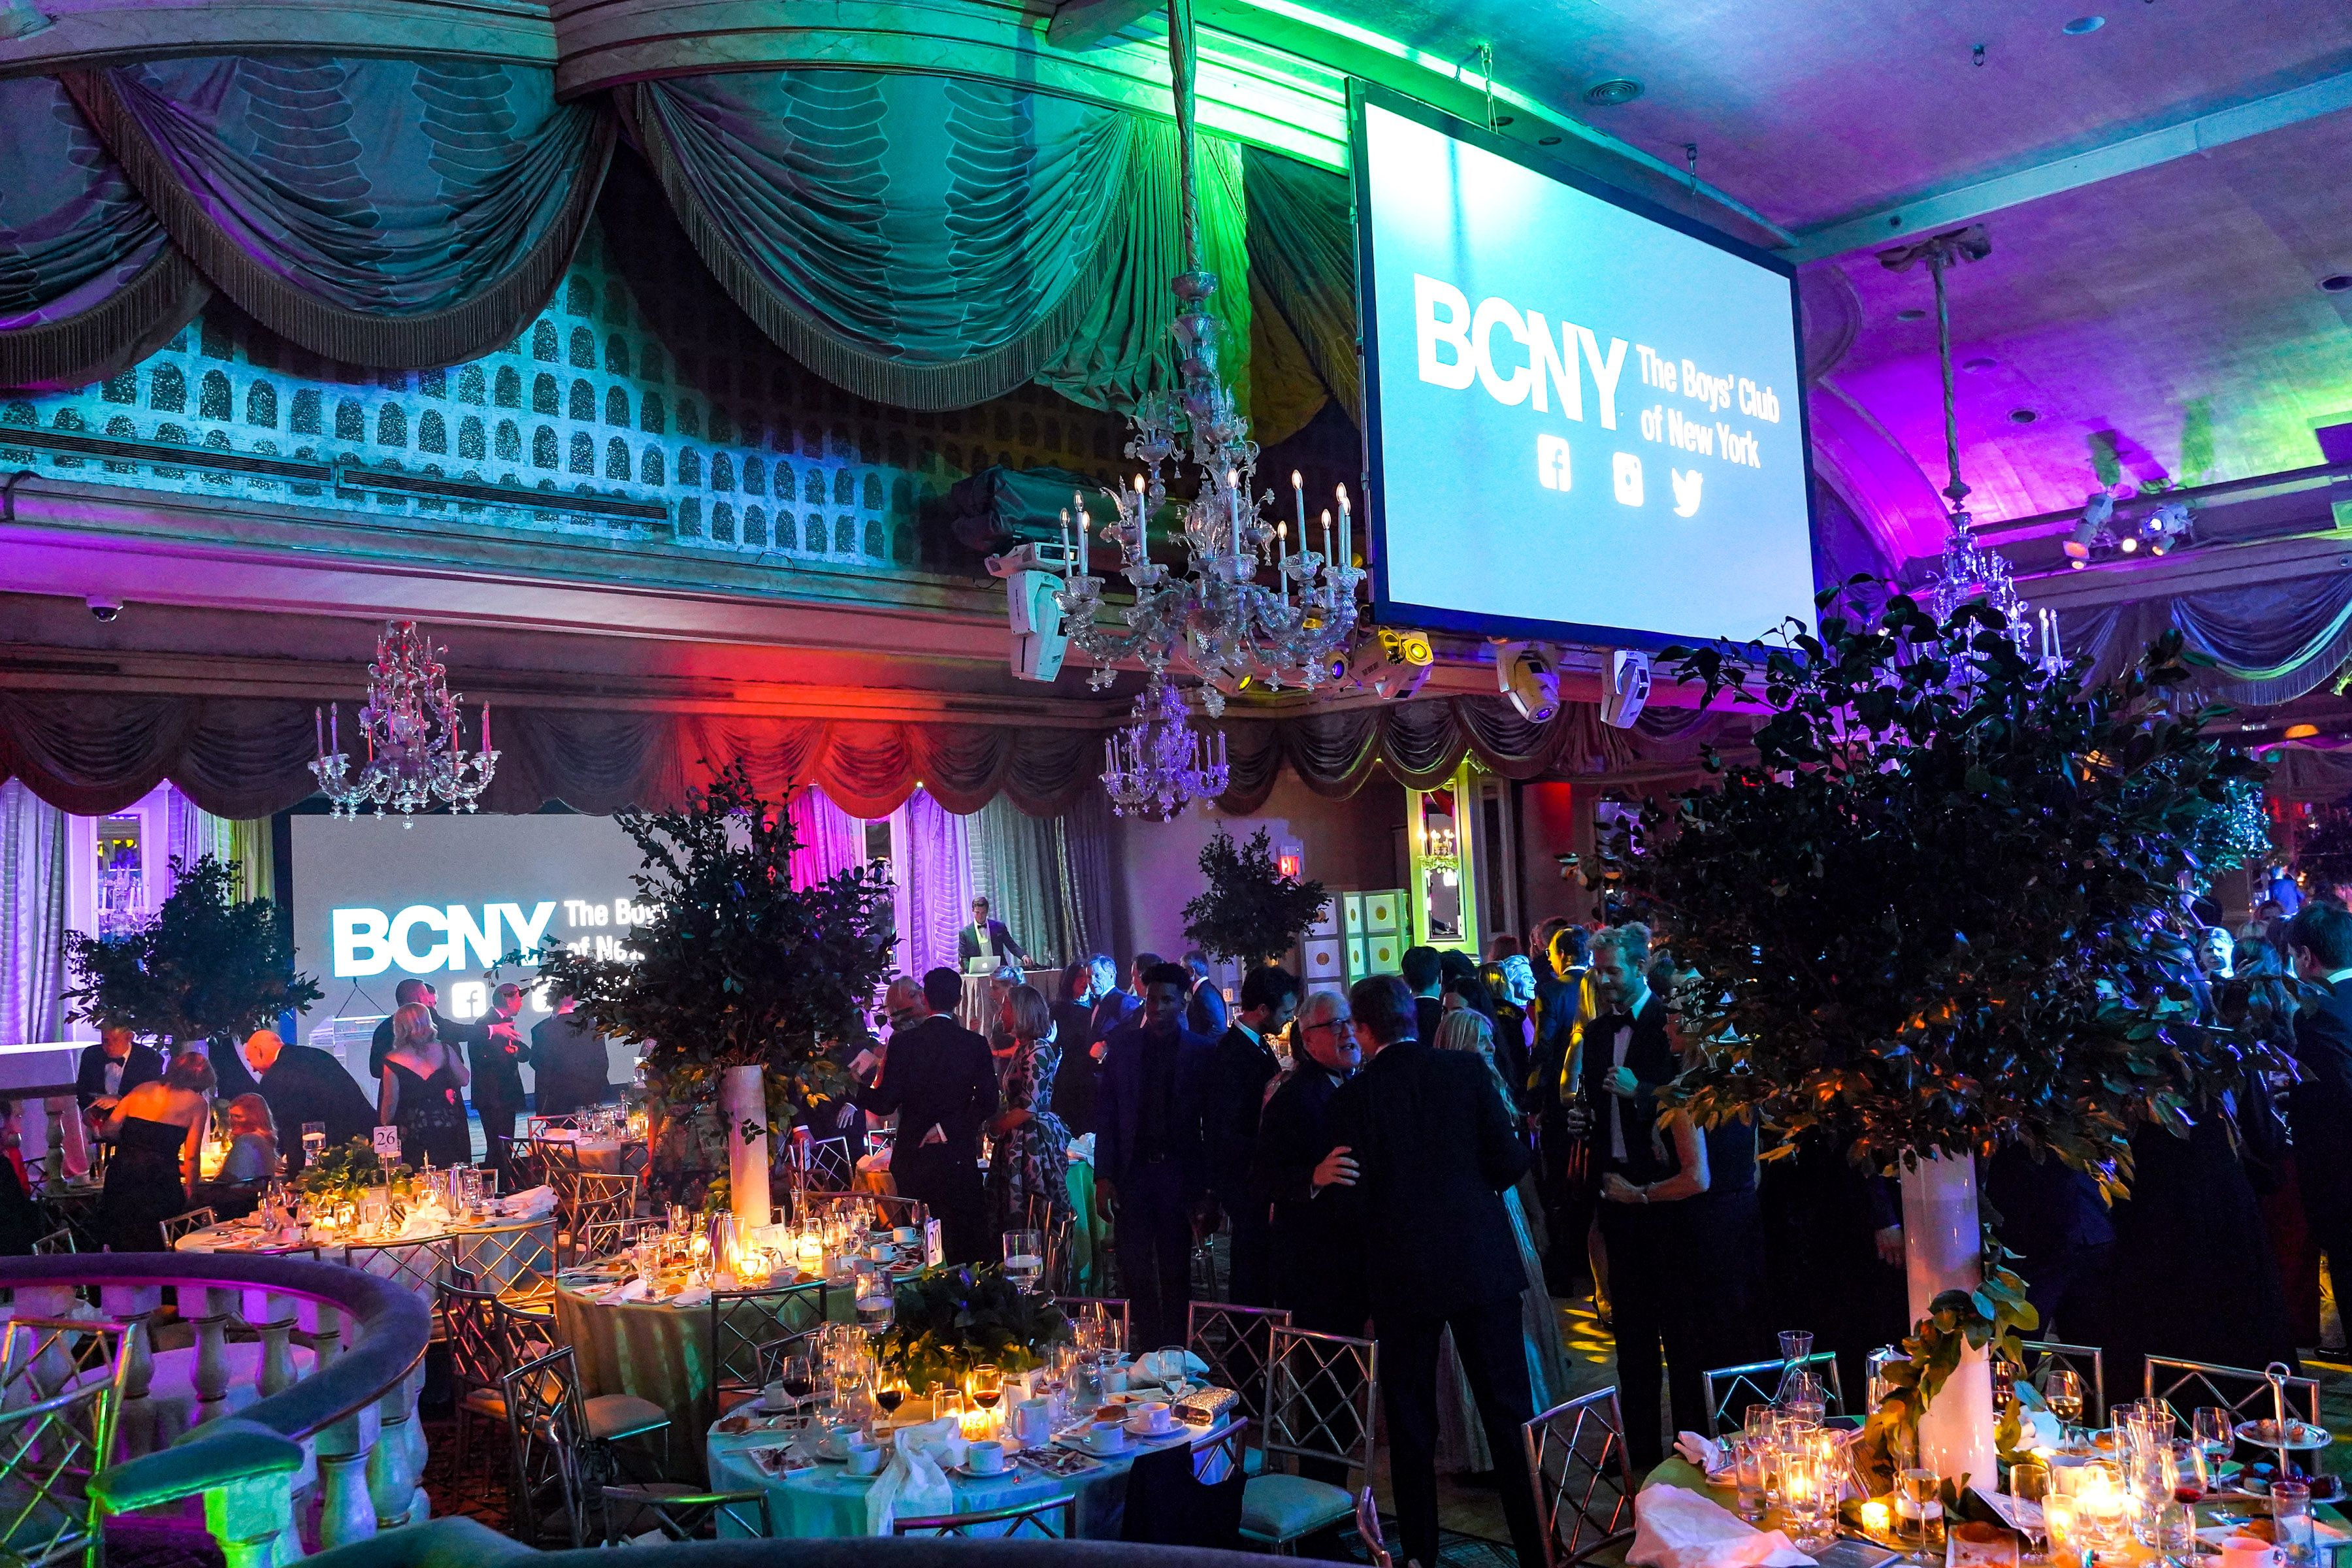 Sharing Gowns for Good at the BCNY's Green Gala